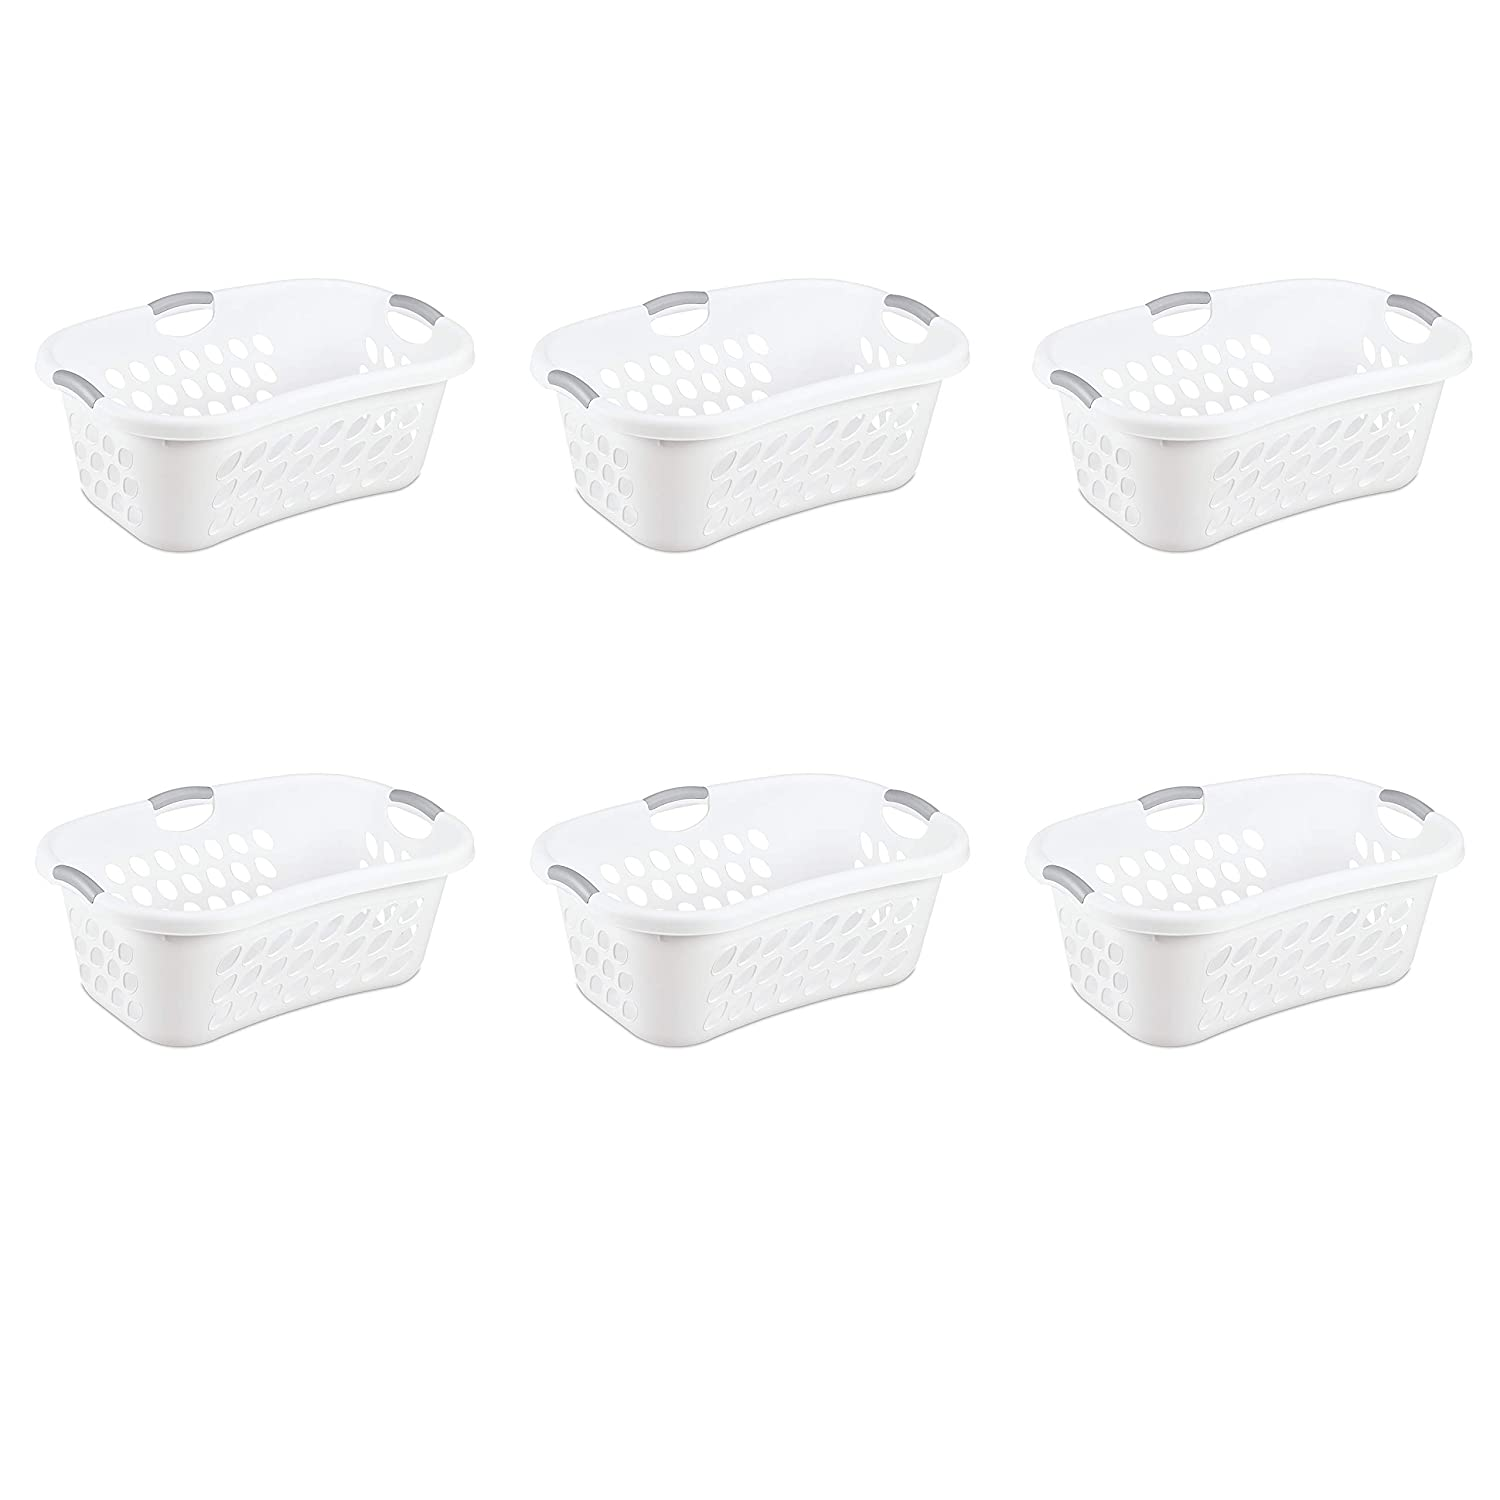 Sterilite 12108006 1.25 Bushel/44 Liter Ultra Hip Hold Laundry Basket, White Basket w/ Titanium Inserts, 6-Pack